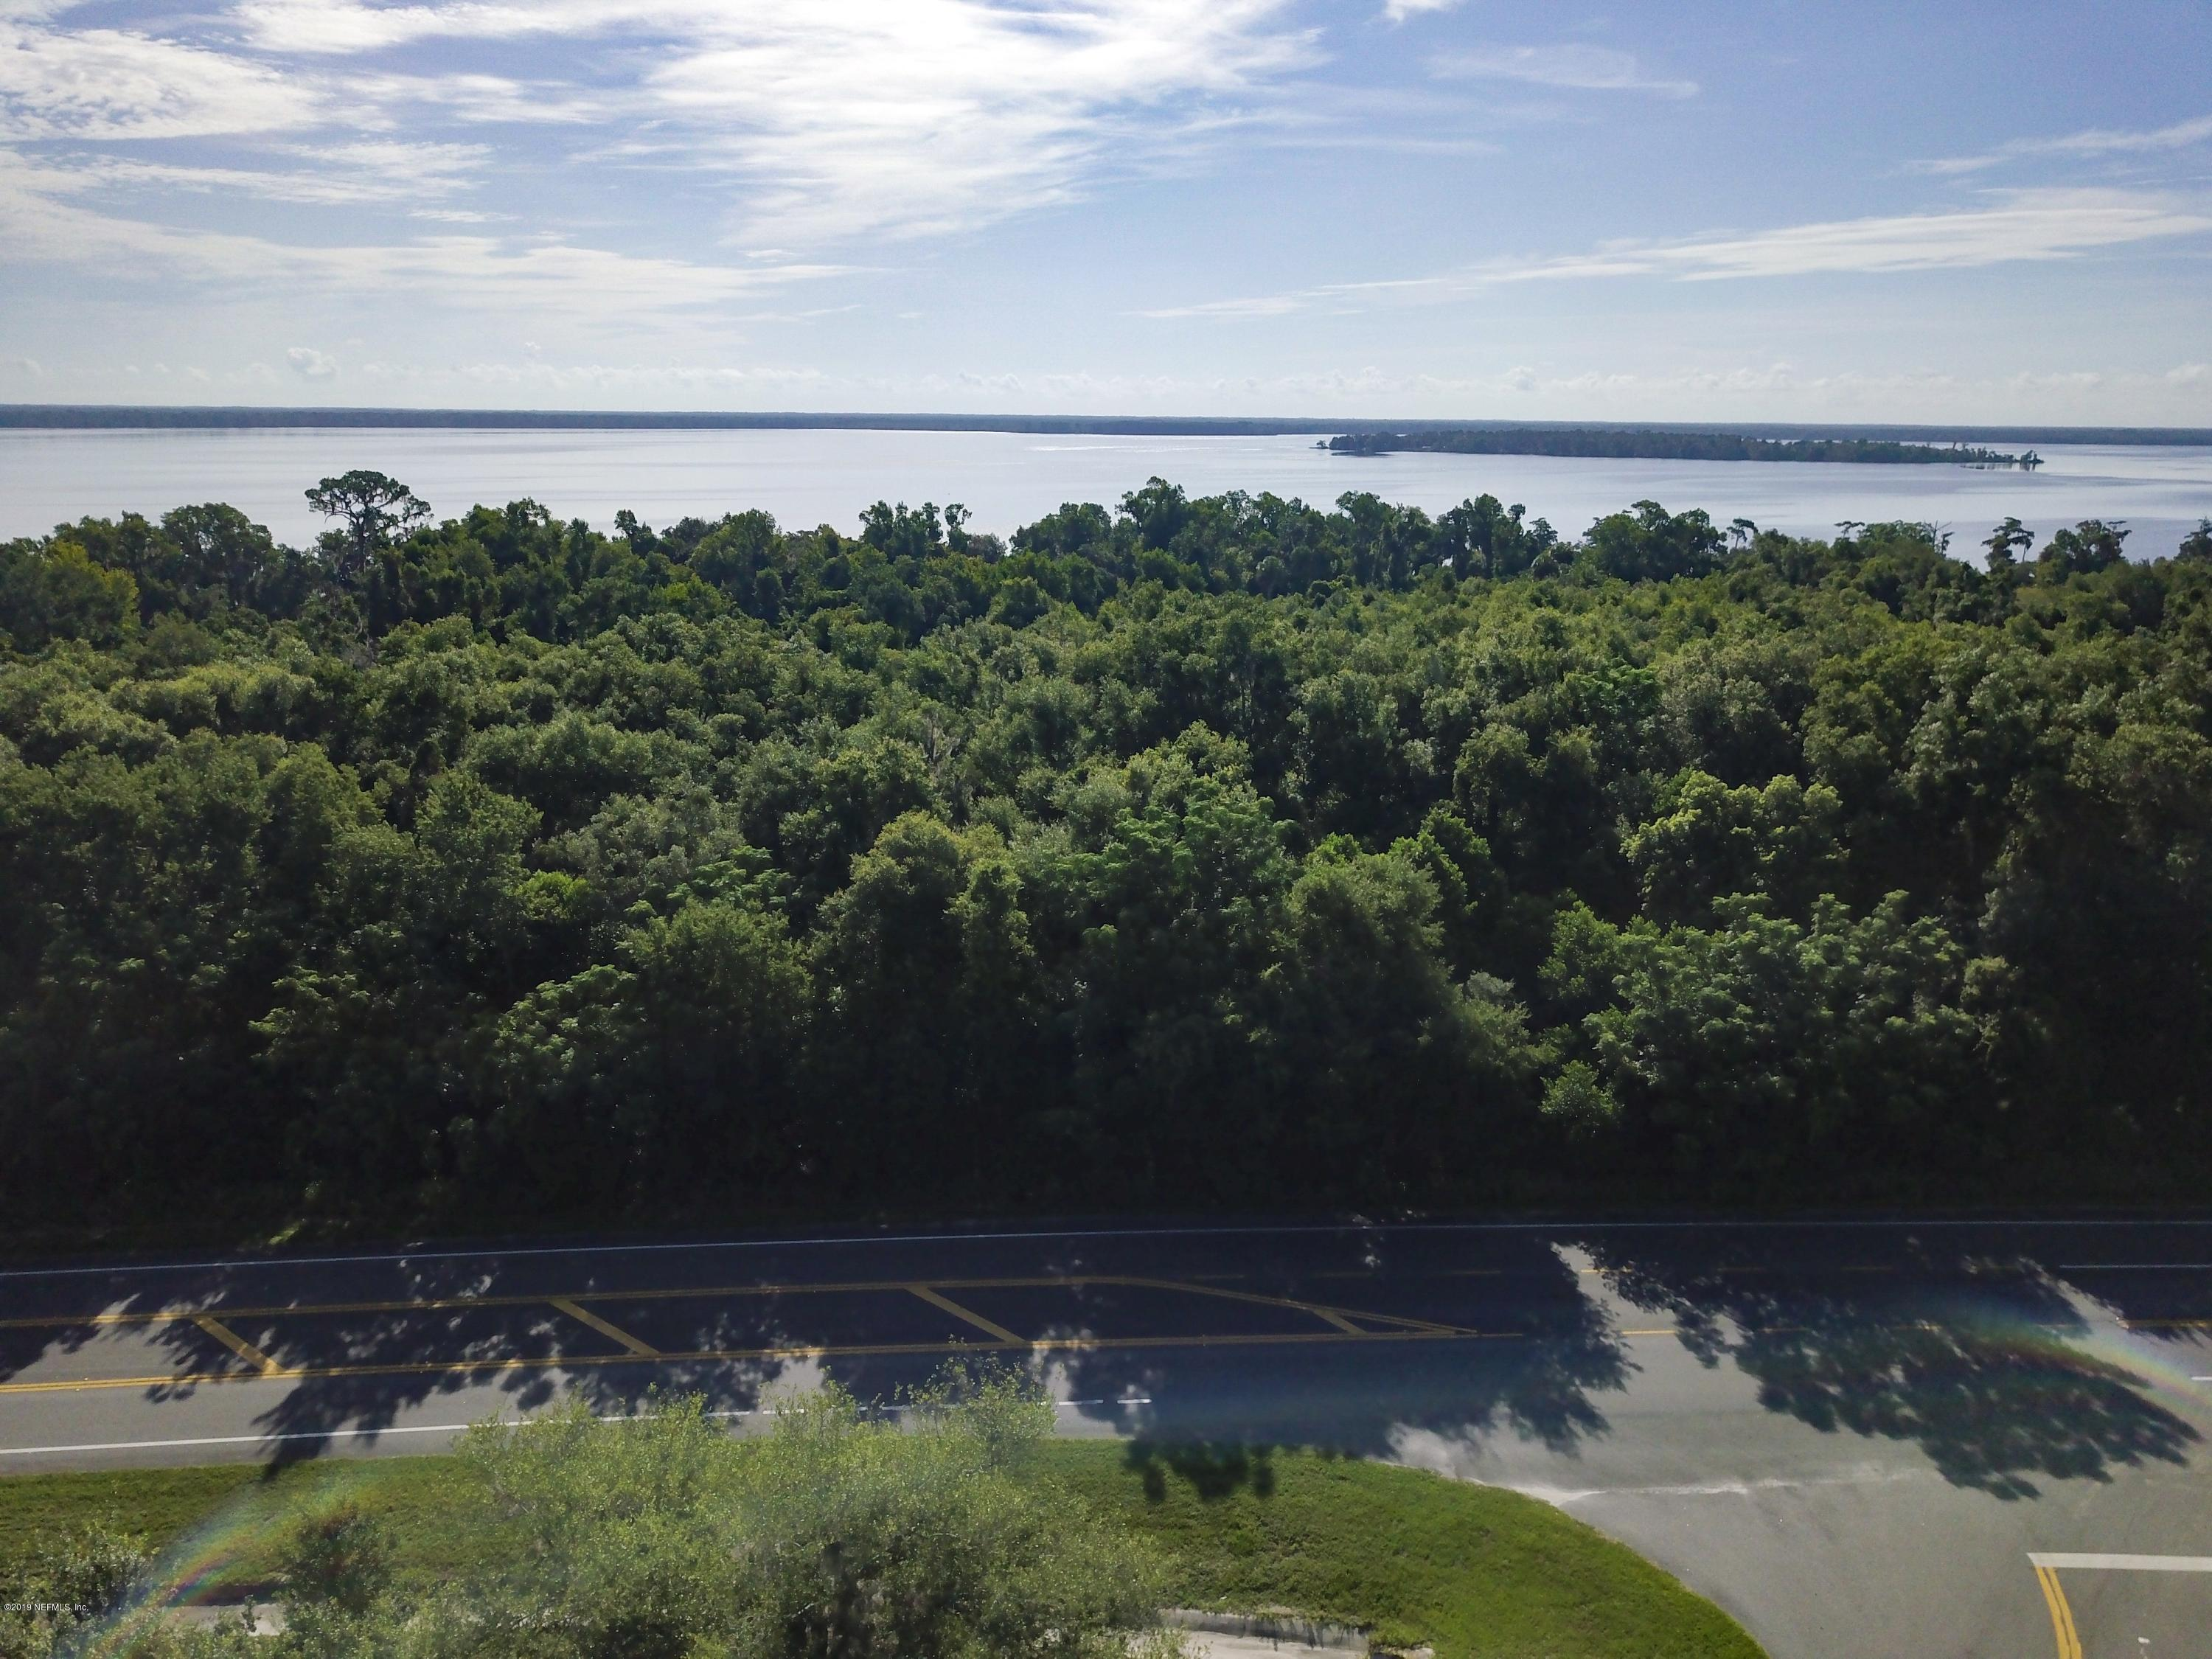 0 SUMMIT, CRESCENT CITY, FLORIDA 32112, ,Vacant land,For sale,SUMMIT,1020632